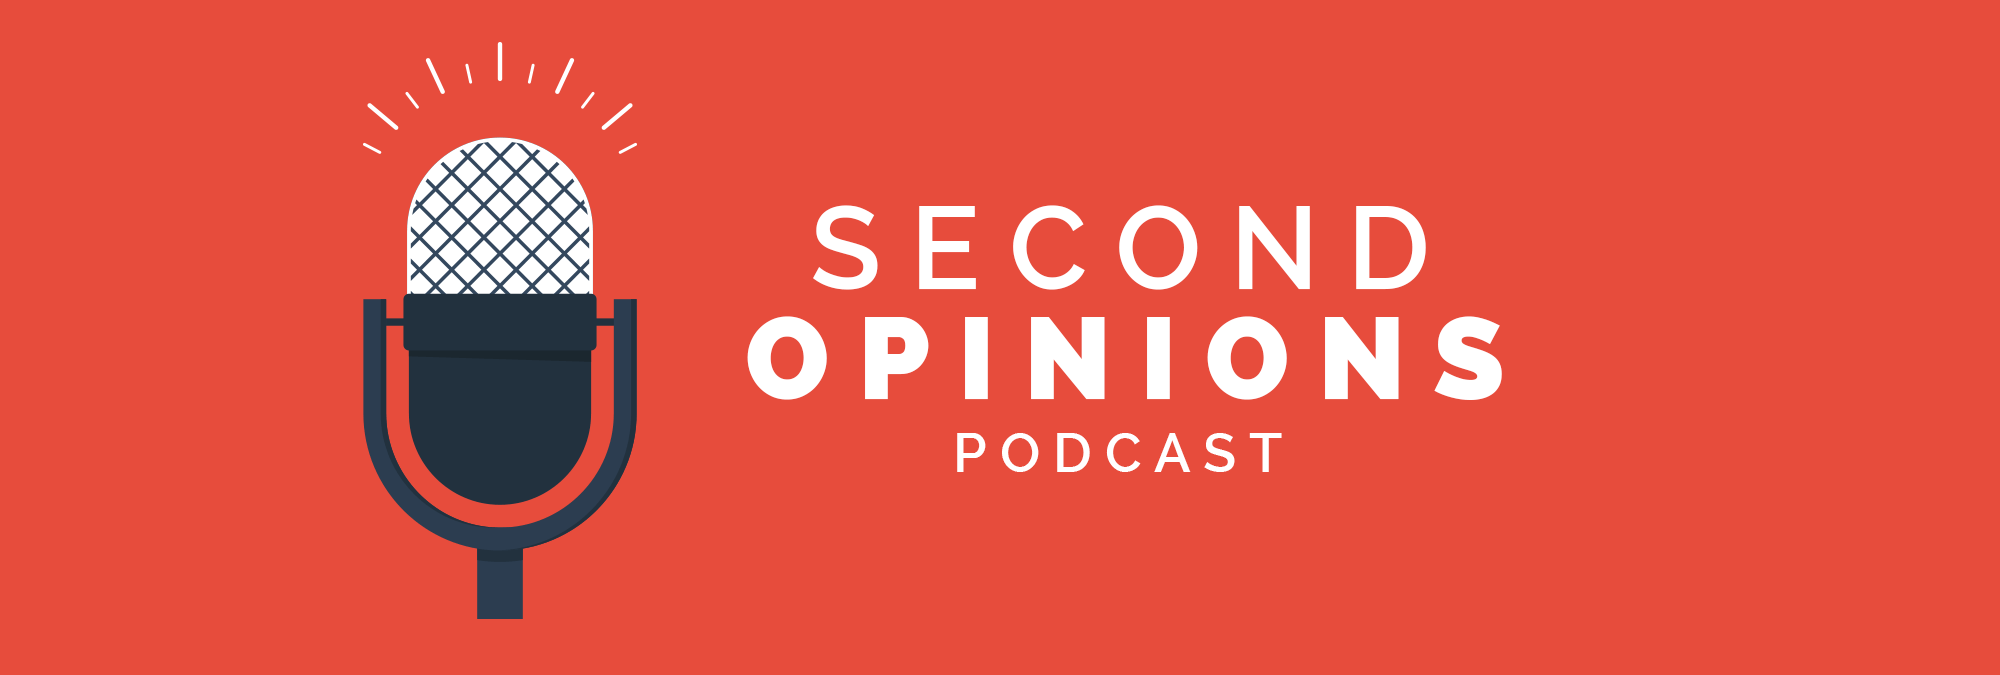 HealthStream Second Opinions Podcast